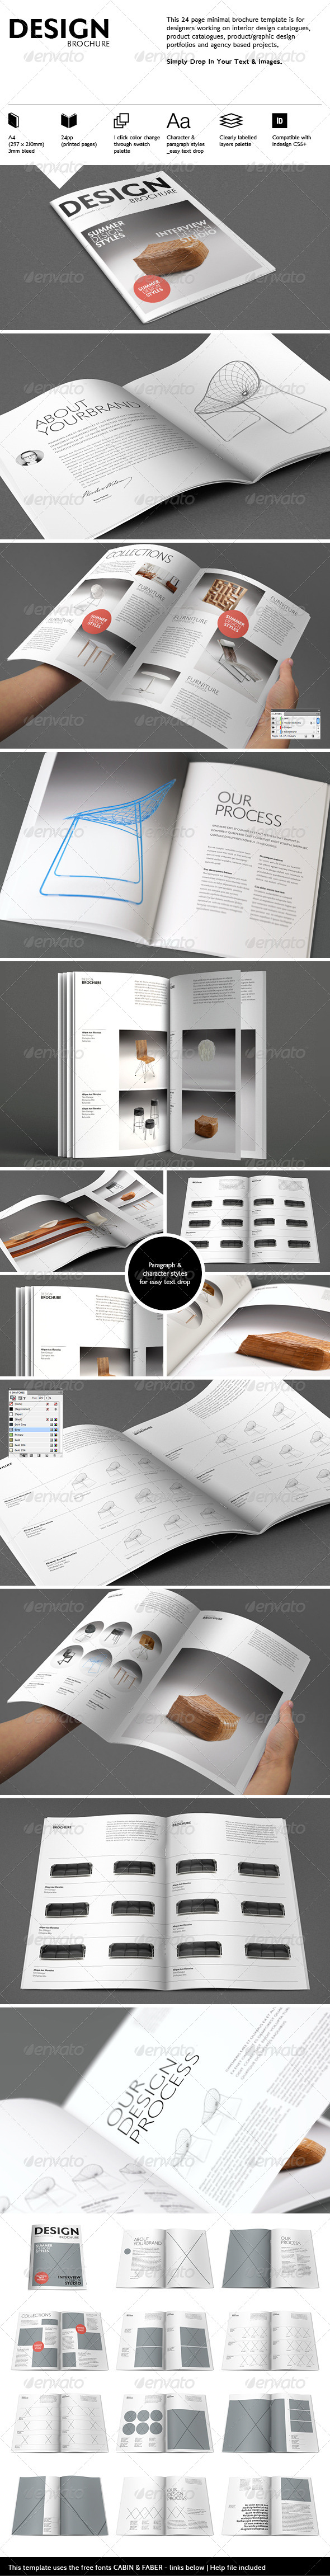 Interiors Brochure - Catalogs Brochures